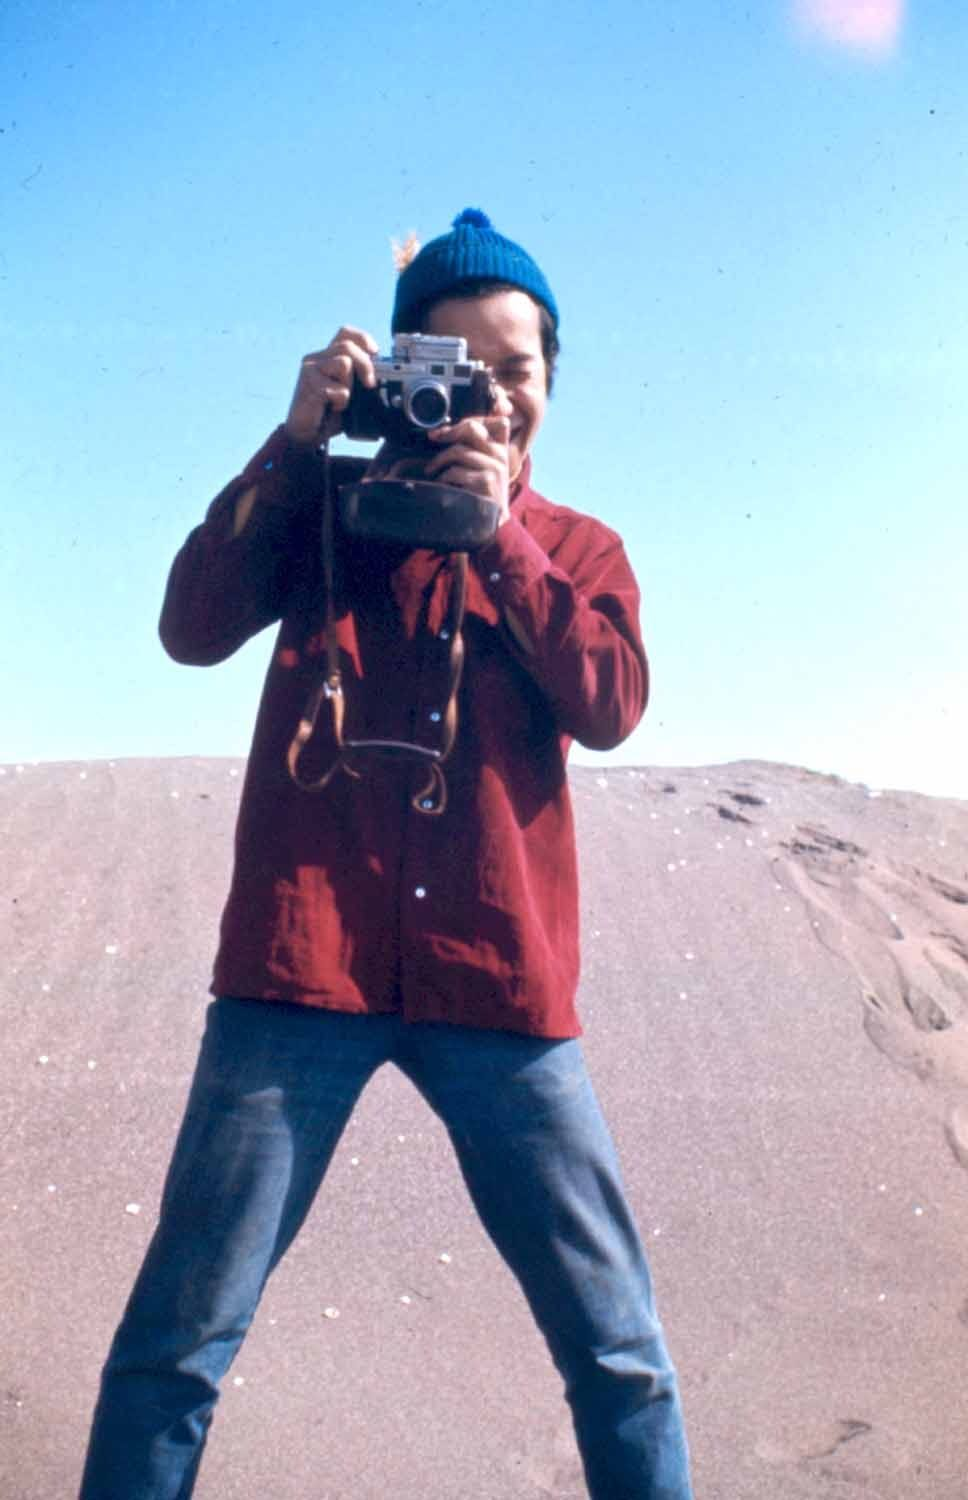 Anussorn Thavisin takes a photo near the Black Sea coast in Turkey in 1970. Photo: David Shaw / Courtesy